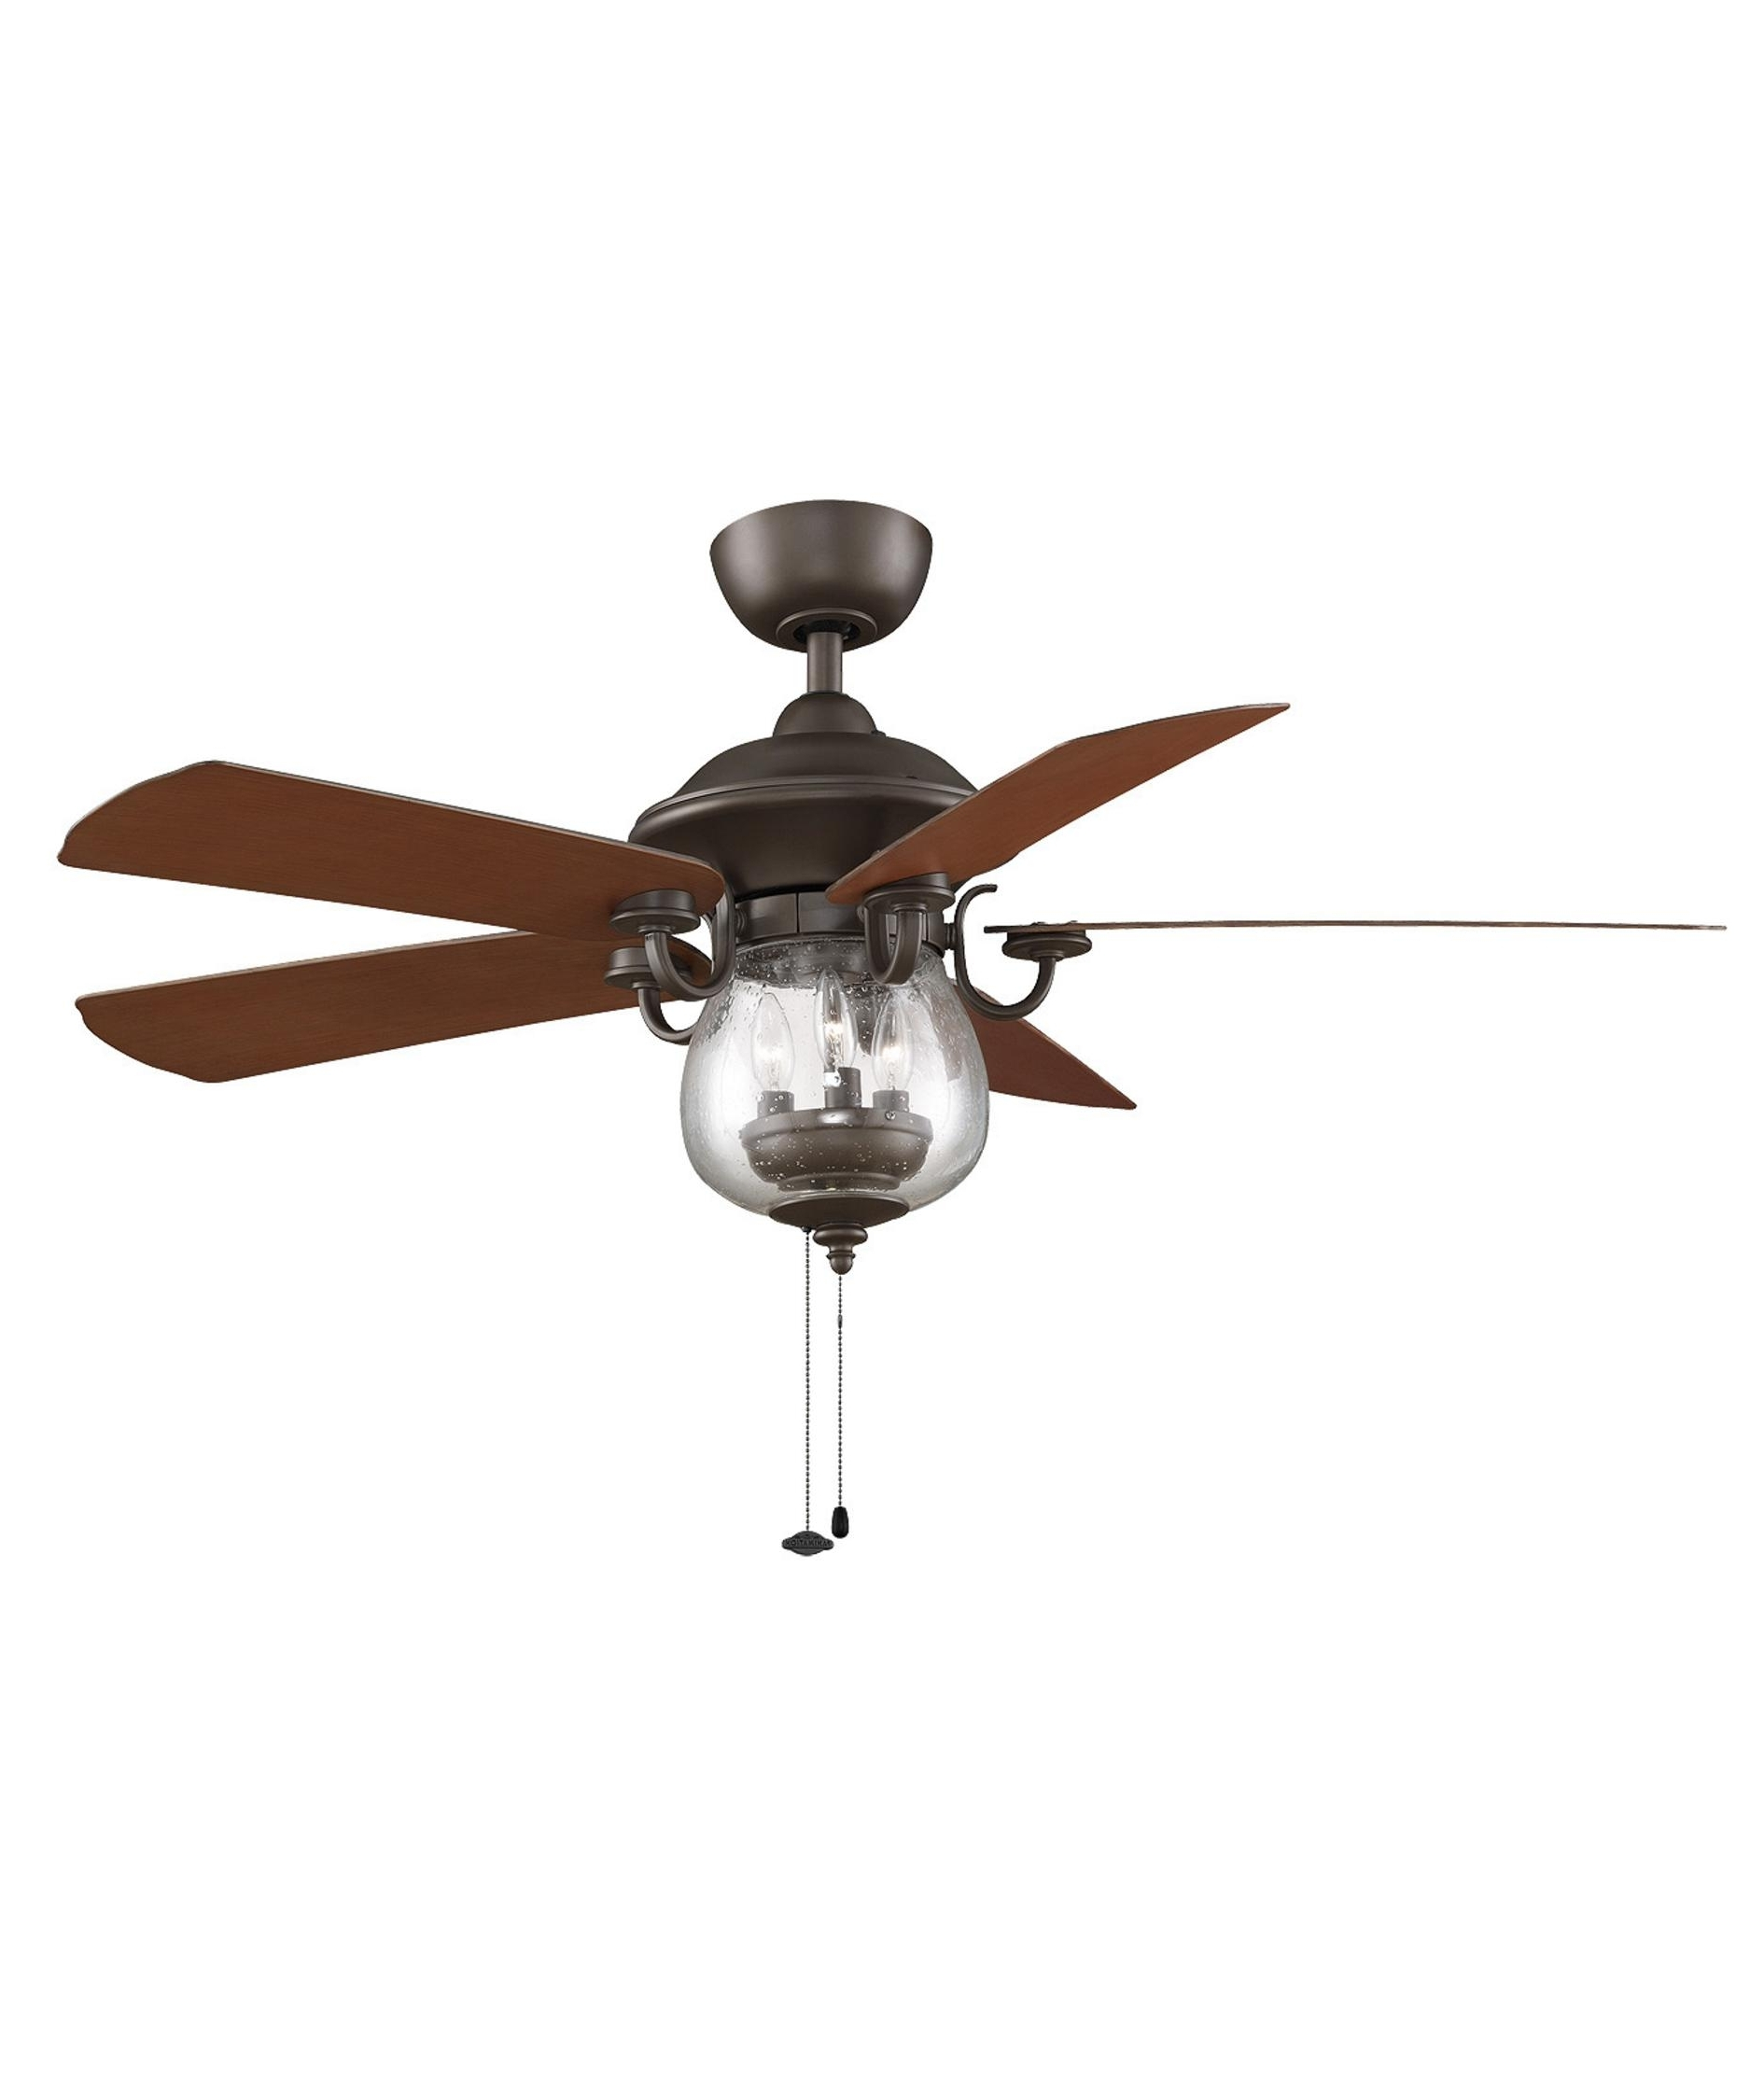 Sevenstonesinc In Hunter Outdoor Ceiling Fans With Lights (View 16 of 20)